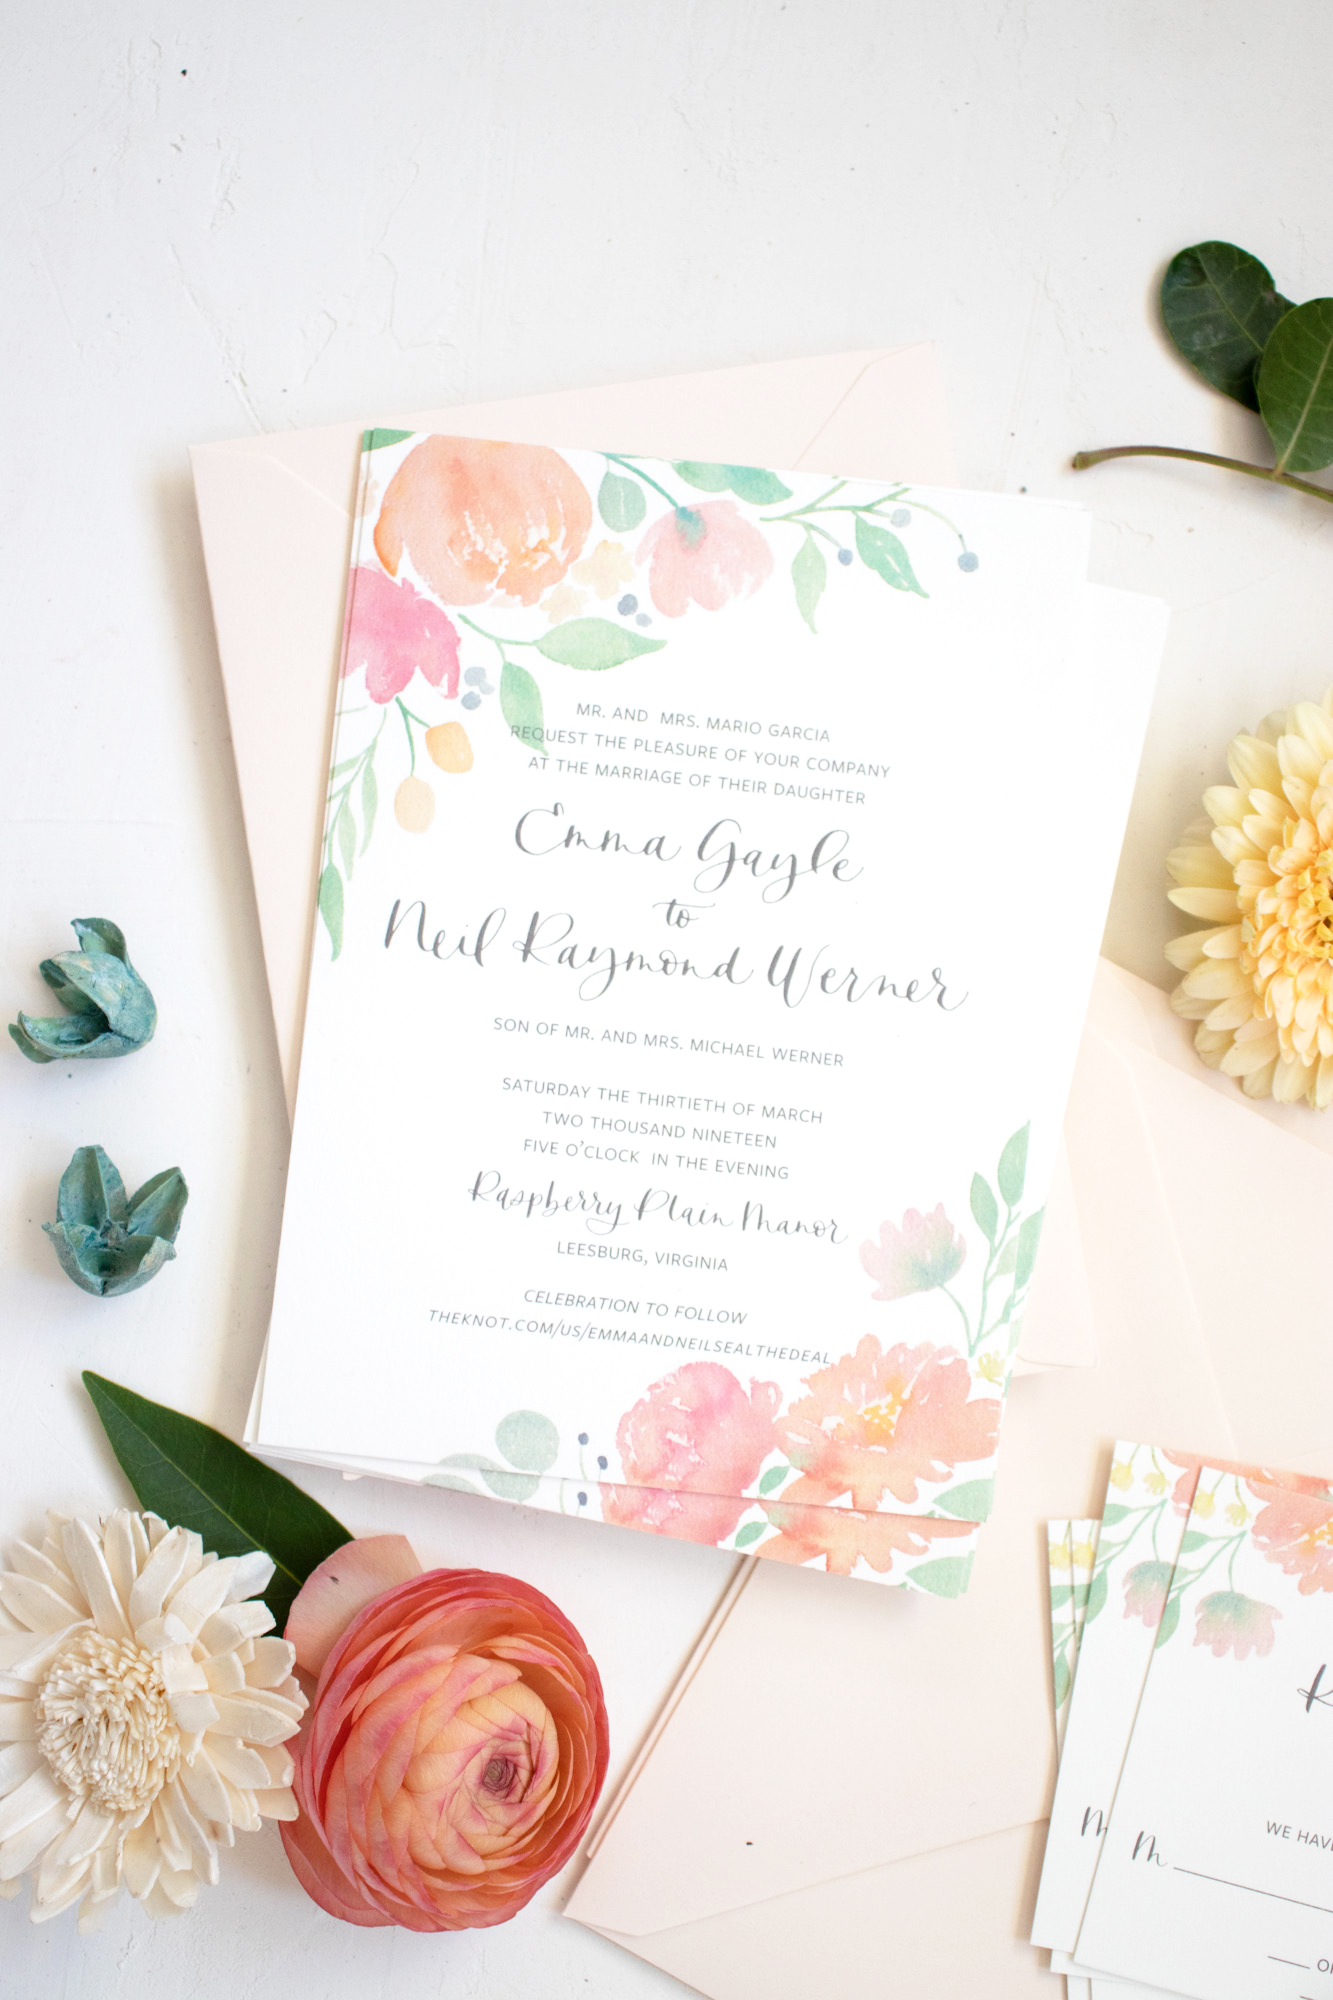 Watercolor Floral Wedding Invitation for a Spring Wedding